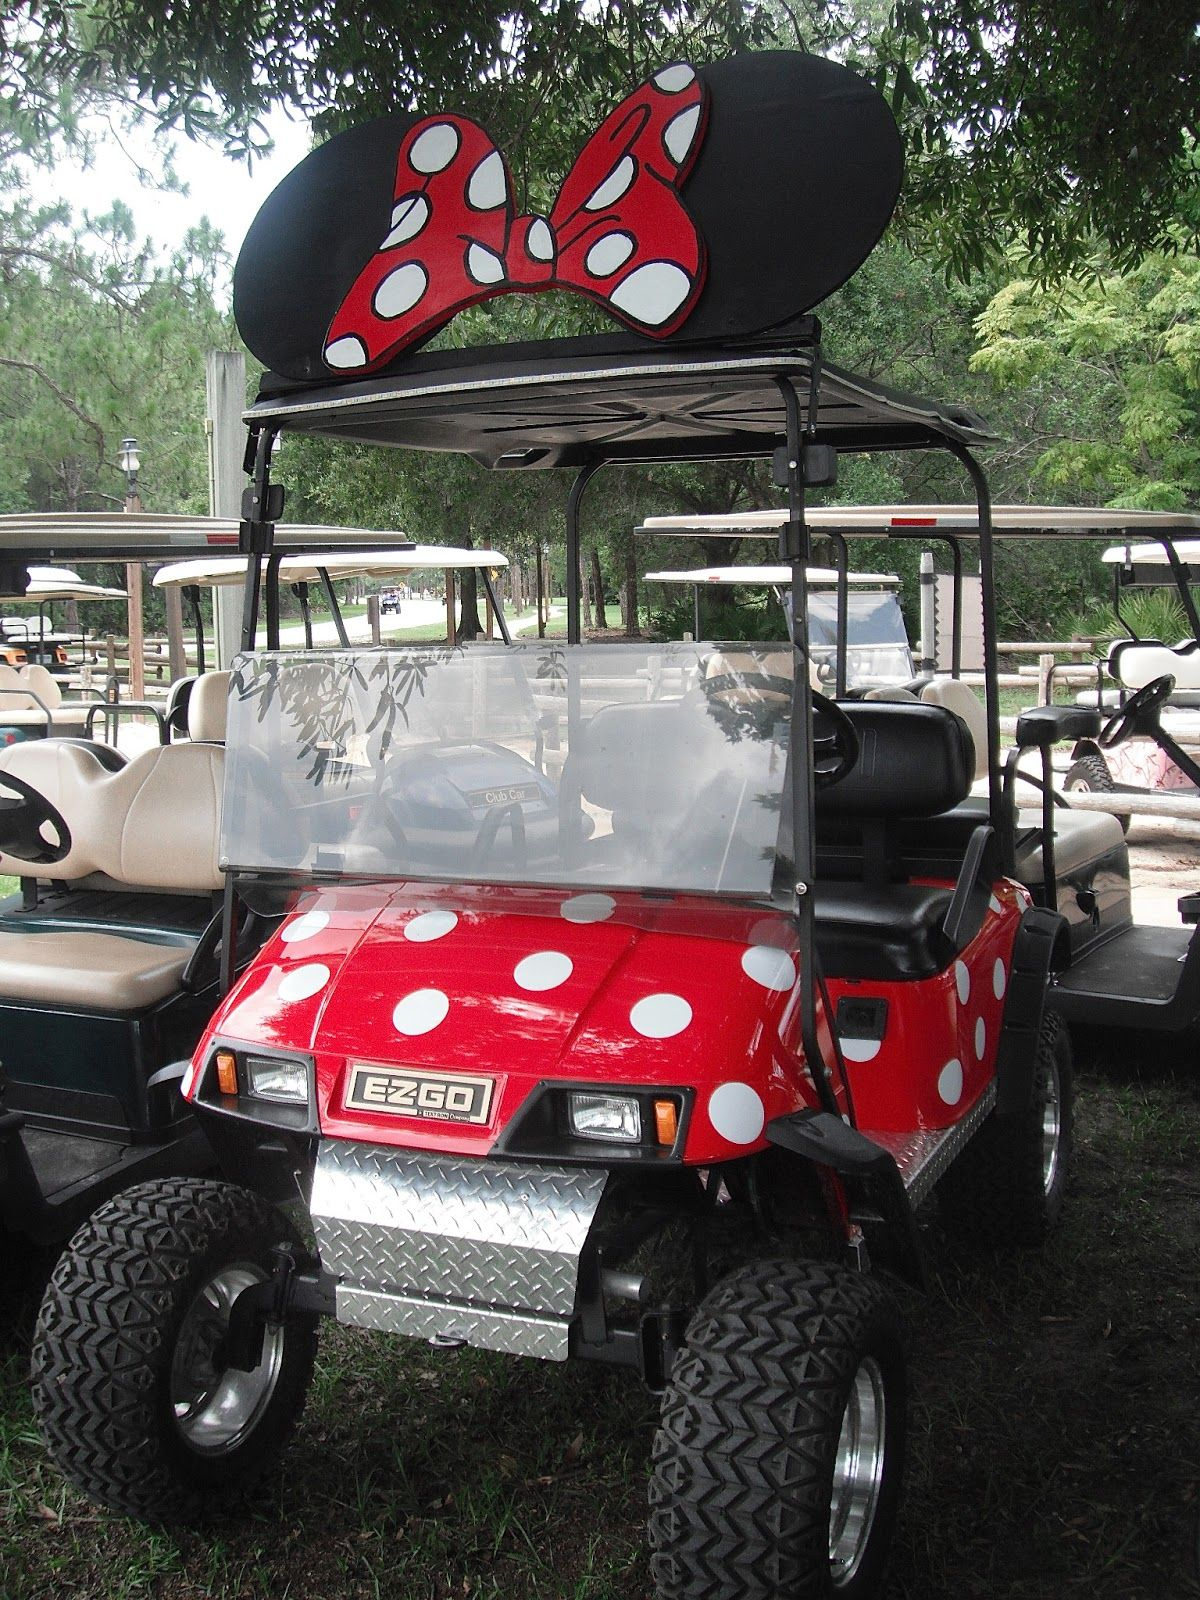 decorated cart - Fort Wilderness Campground. So cute and ... on floating golf game, floating golf hole, floating van, floating generator, floating tank, floating utv, floating golf green,